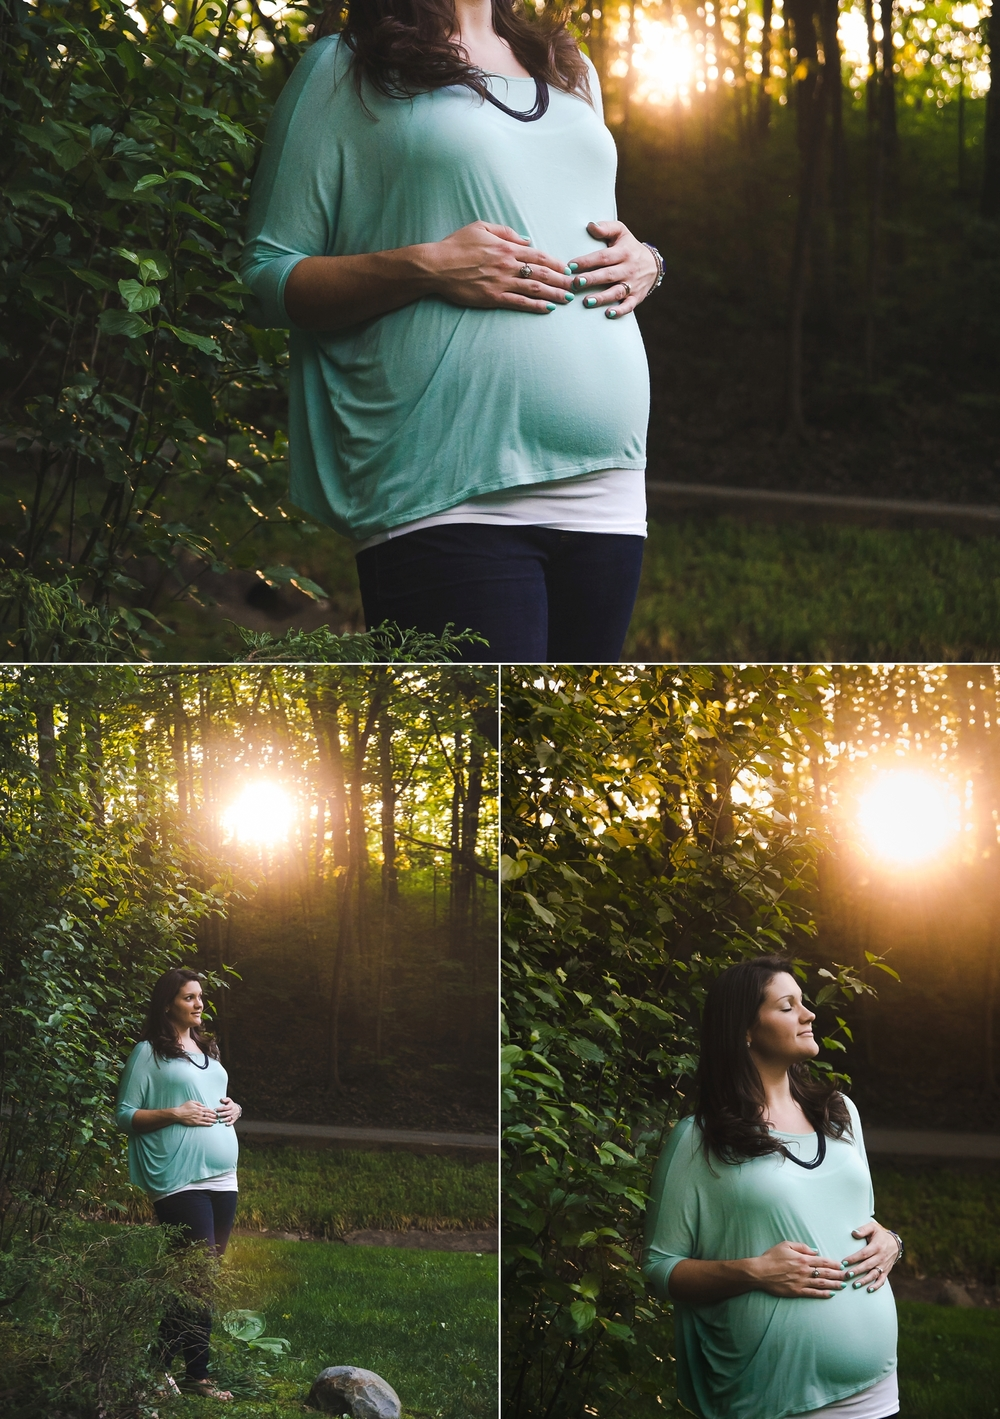 Sunset maternity portraits of pregnant woman wearing a mint top in Indianapolis, IN